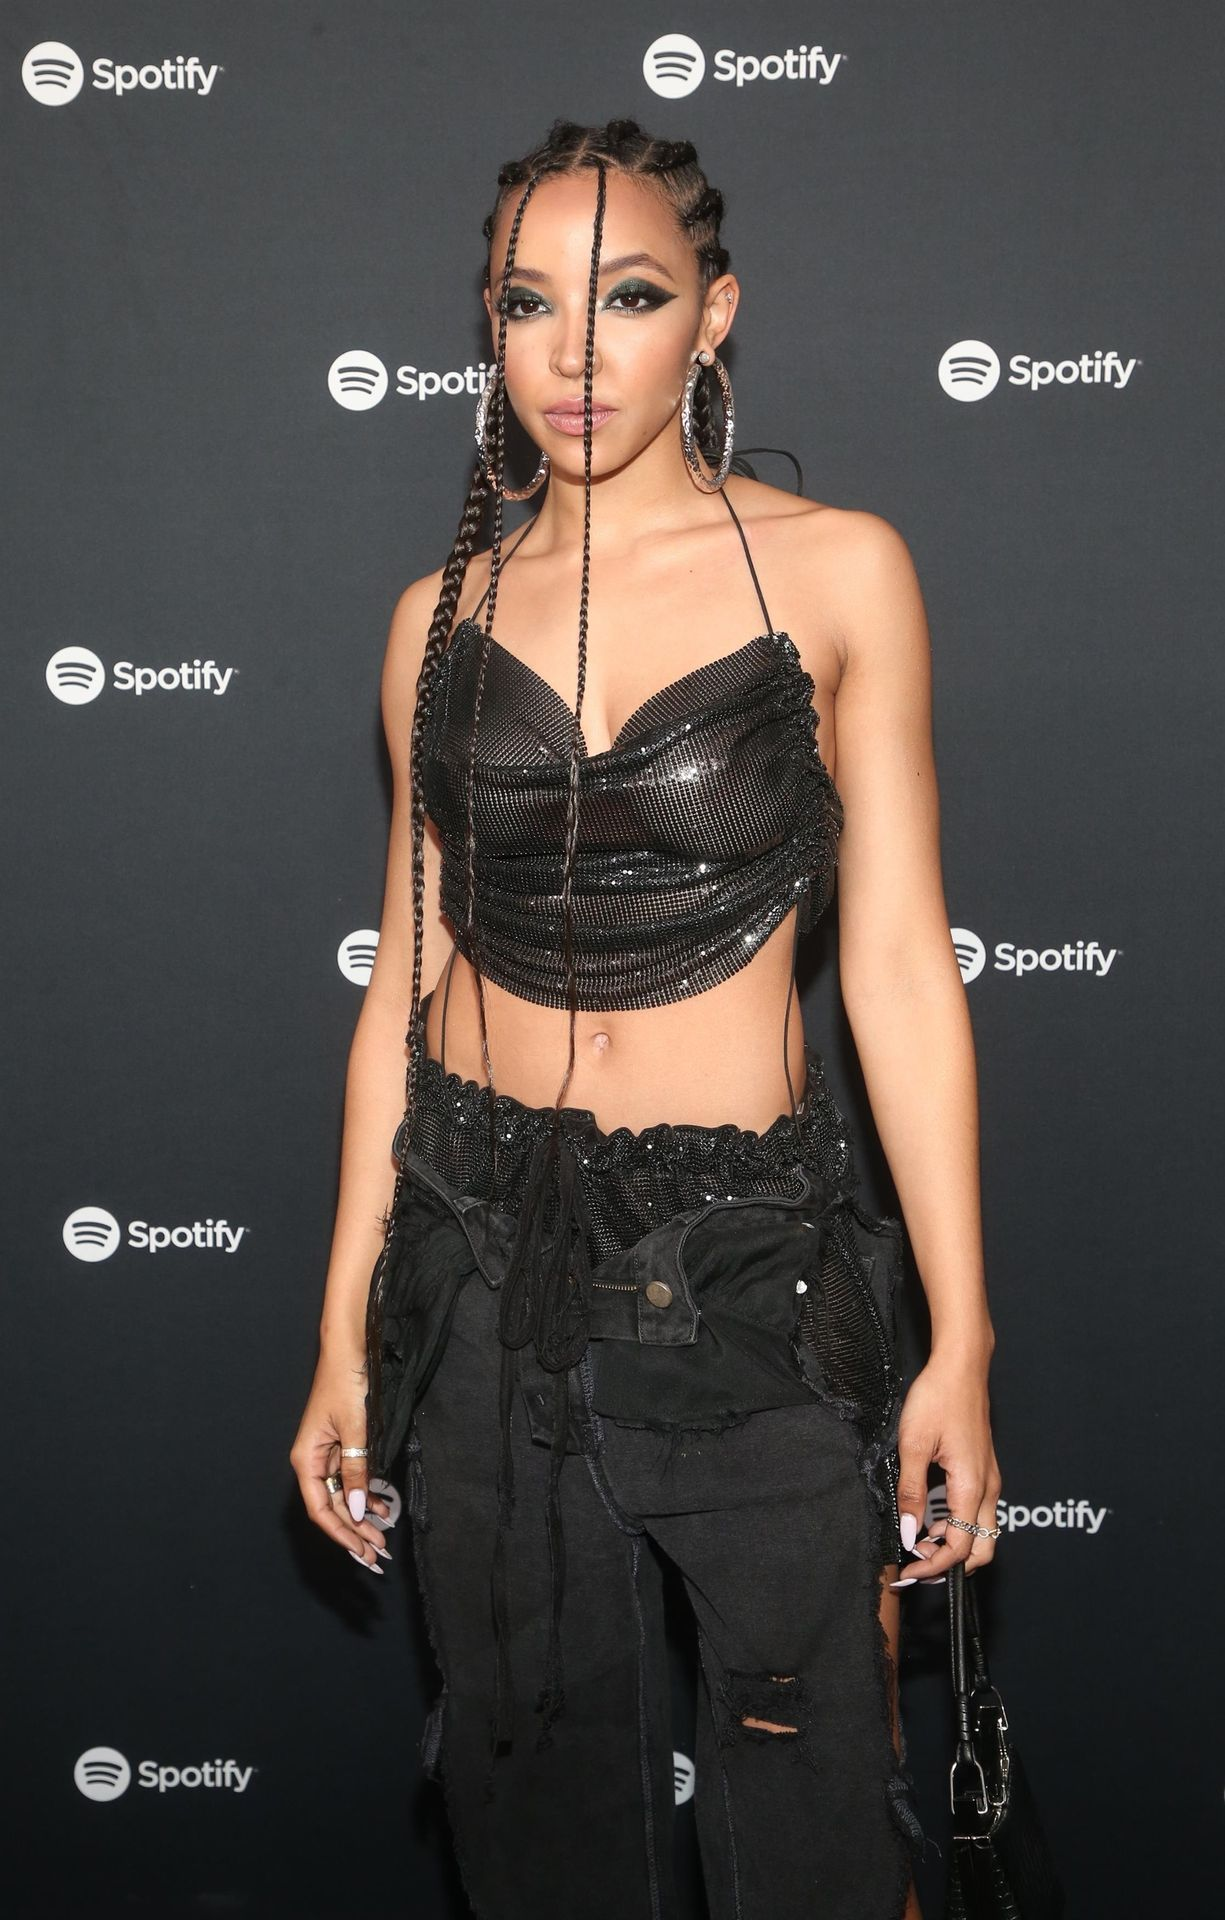 Tinashe Flaunts Her Tits At The Spotify Best New Artist Party 0018